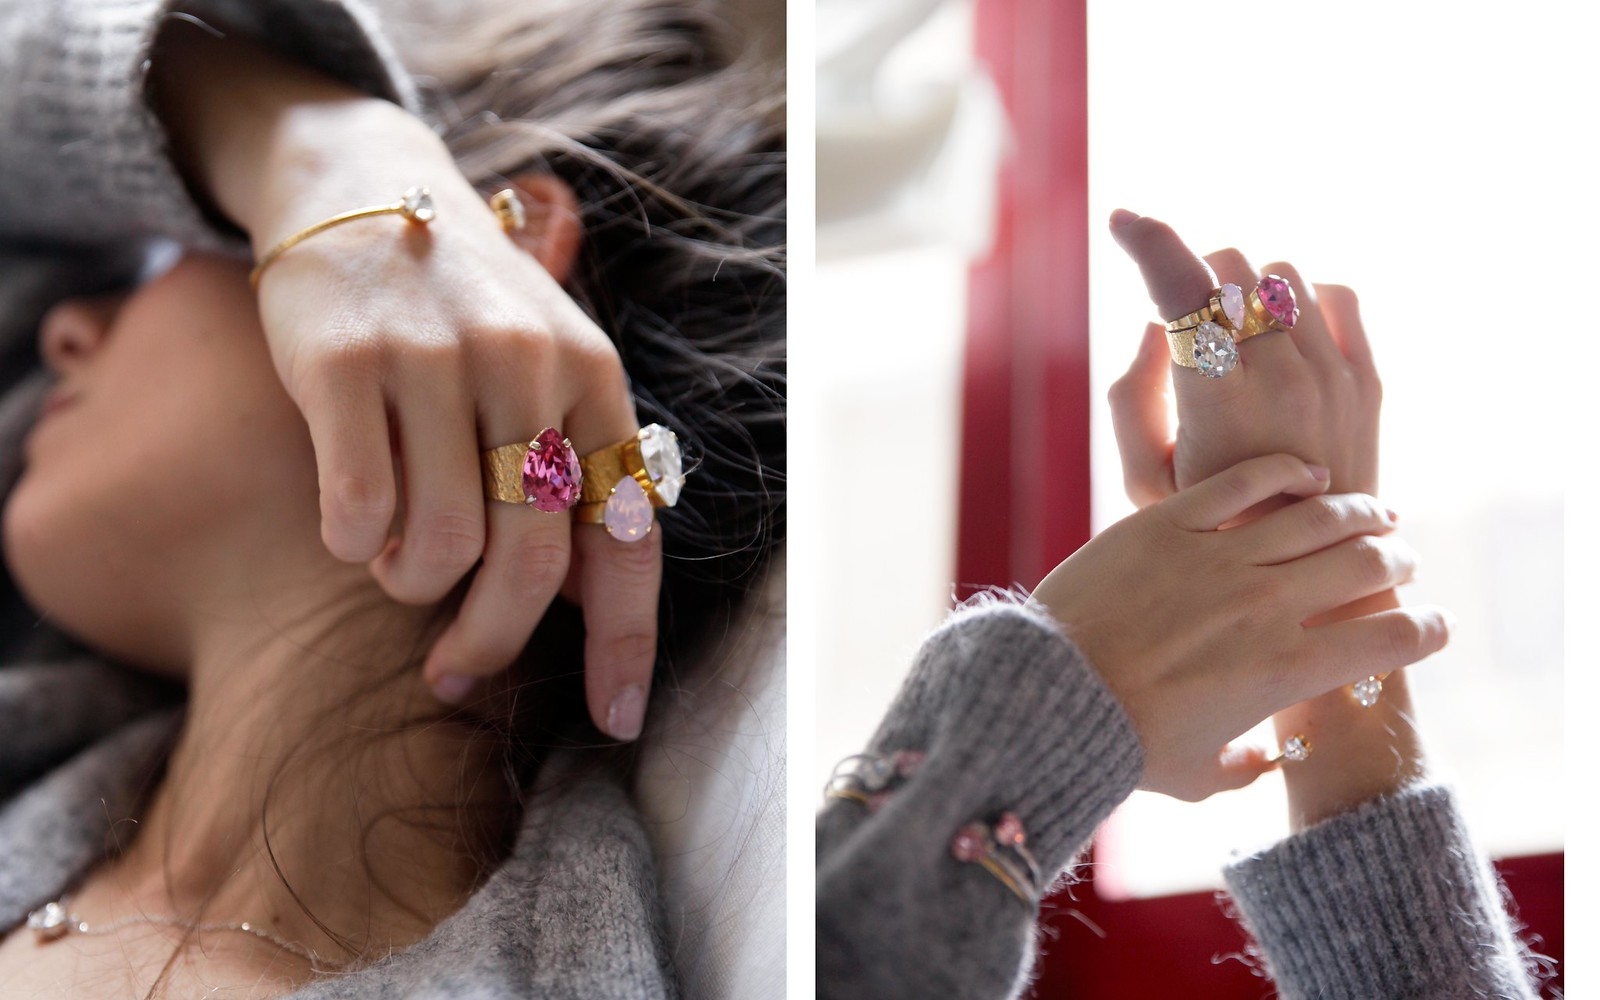 06_St_Valentines_True_Love_With_Caroline_Svedbom_Jewels_Theguestgirl_Brand_Ambassador_Spain_Barcelona_Swarovski_blogger